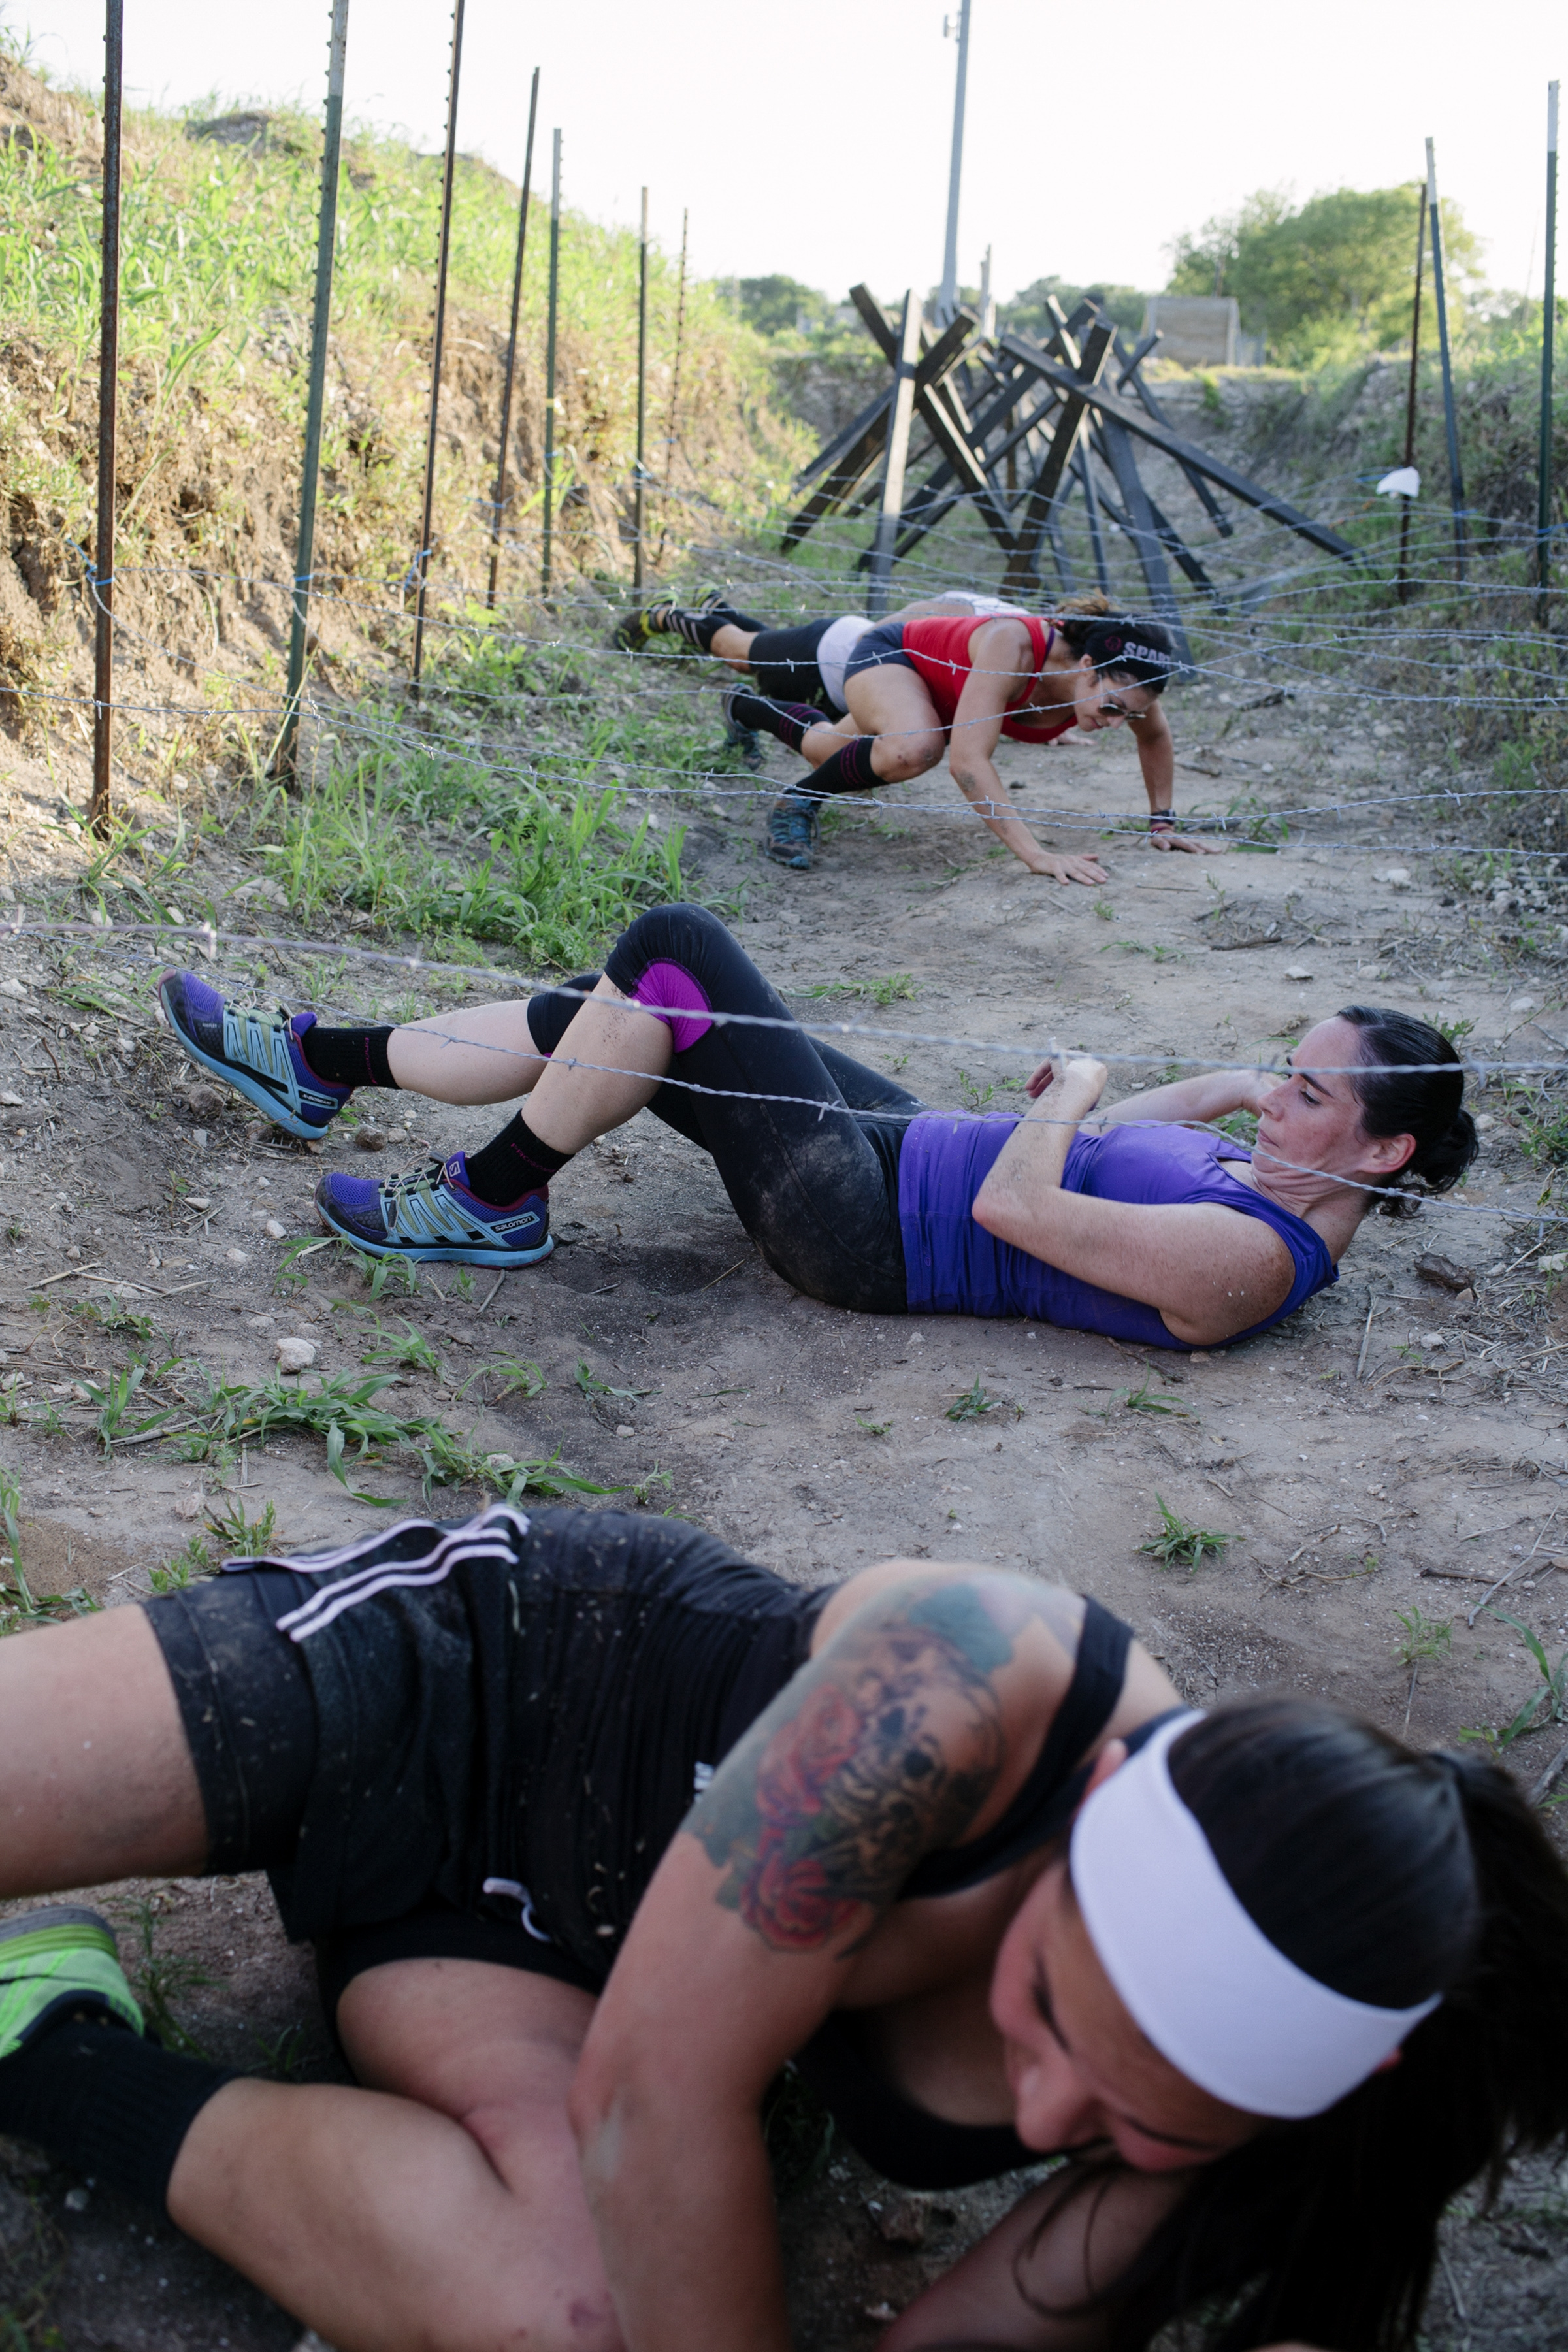 As obstacle course racing becomes more popular, fitness centers like Mylo Obstacle Fitness in Austin, Texas, are adding training courses.